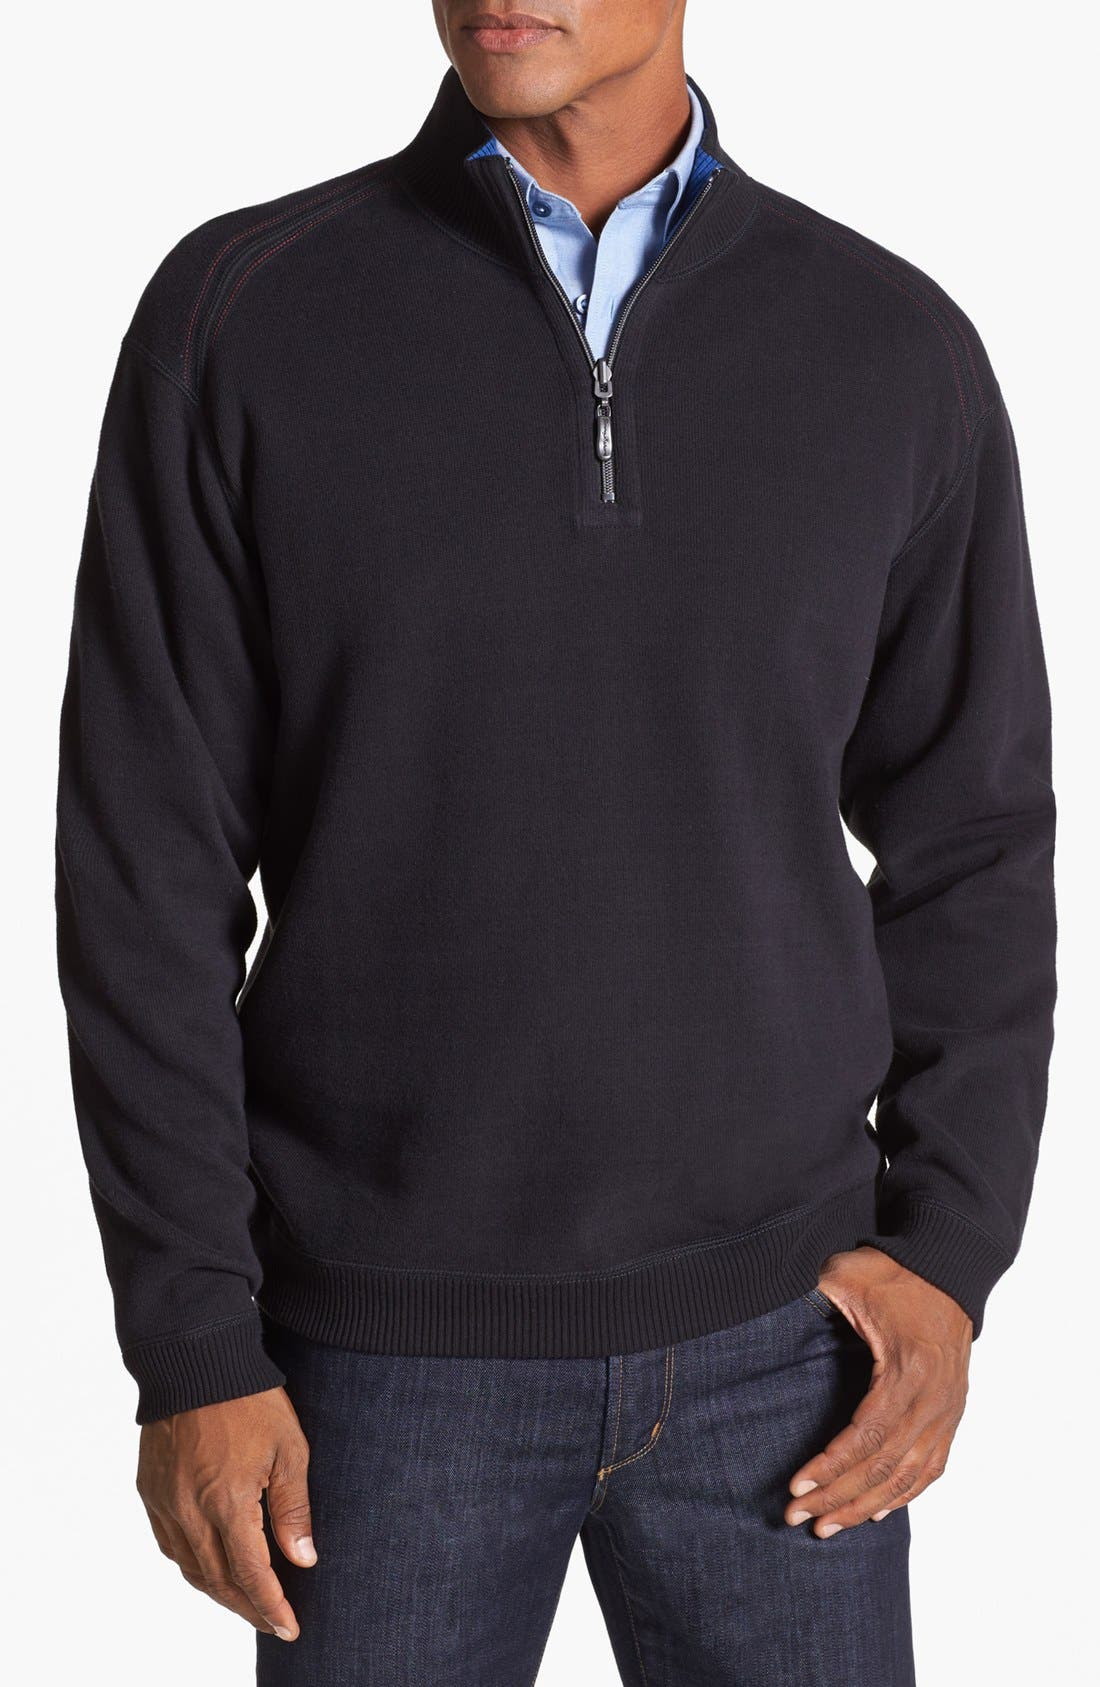 Main Image - Tommy Bahama 'Flip Side Pro' Half Zip Pullover (Big & Tall)